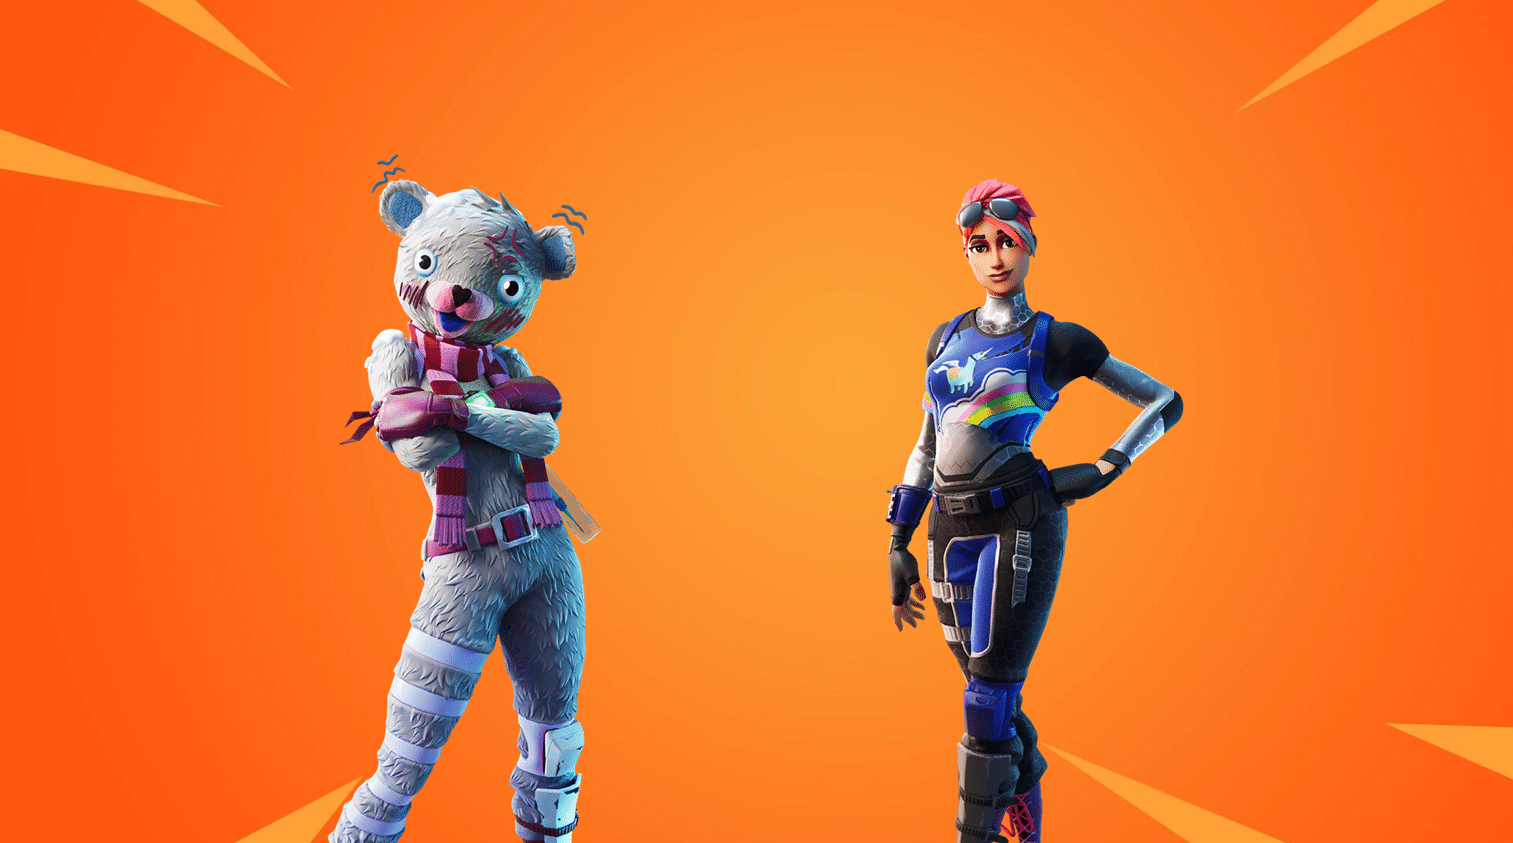 Leaked Fortnite Skins yet to be released